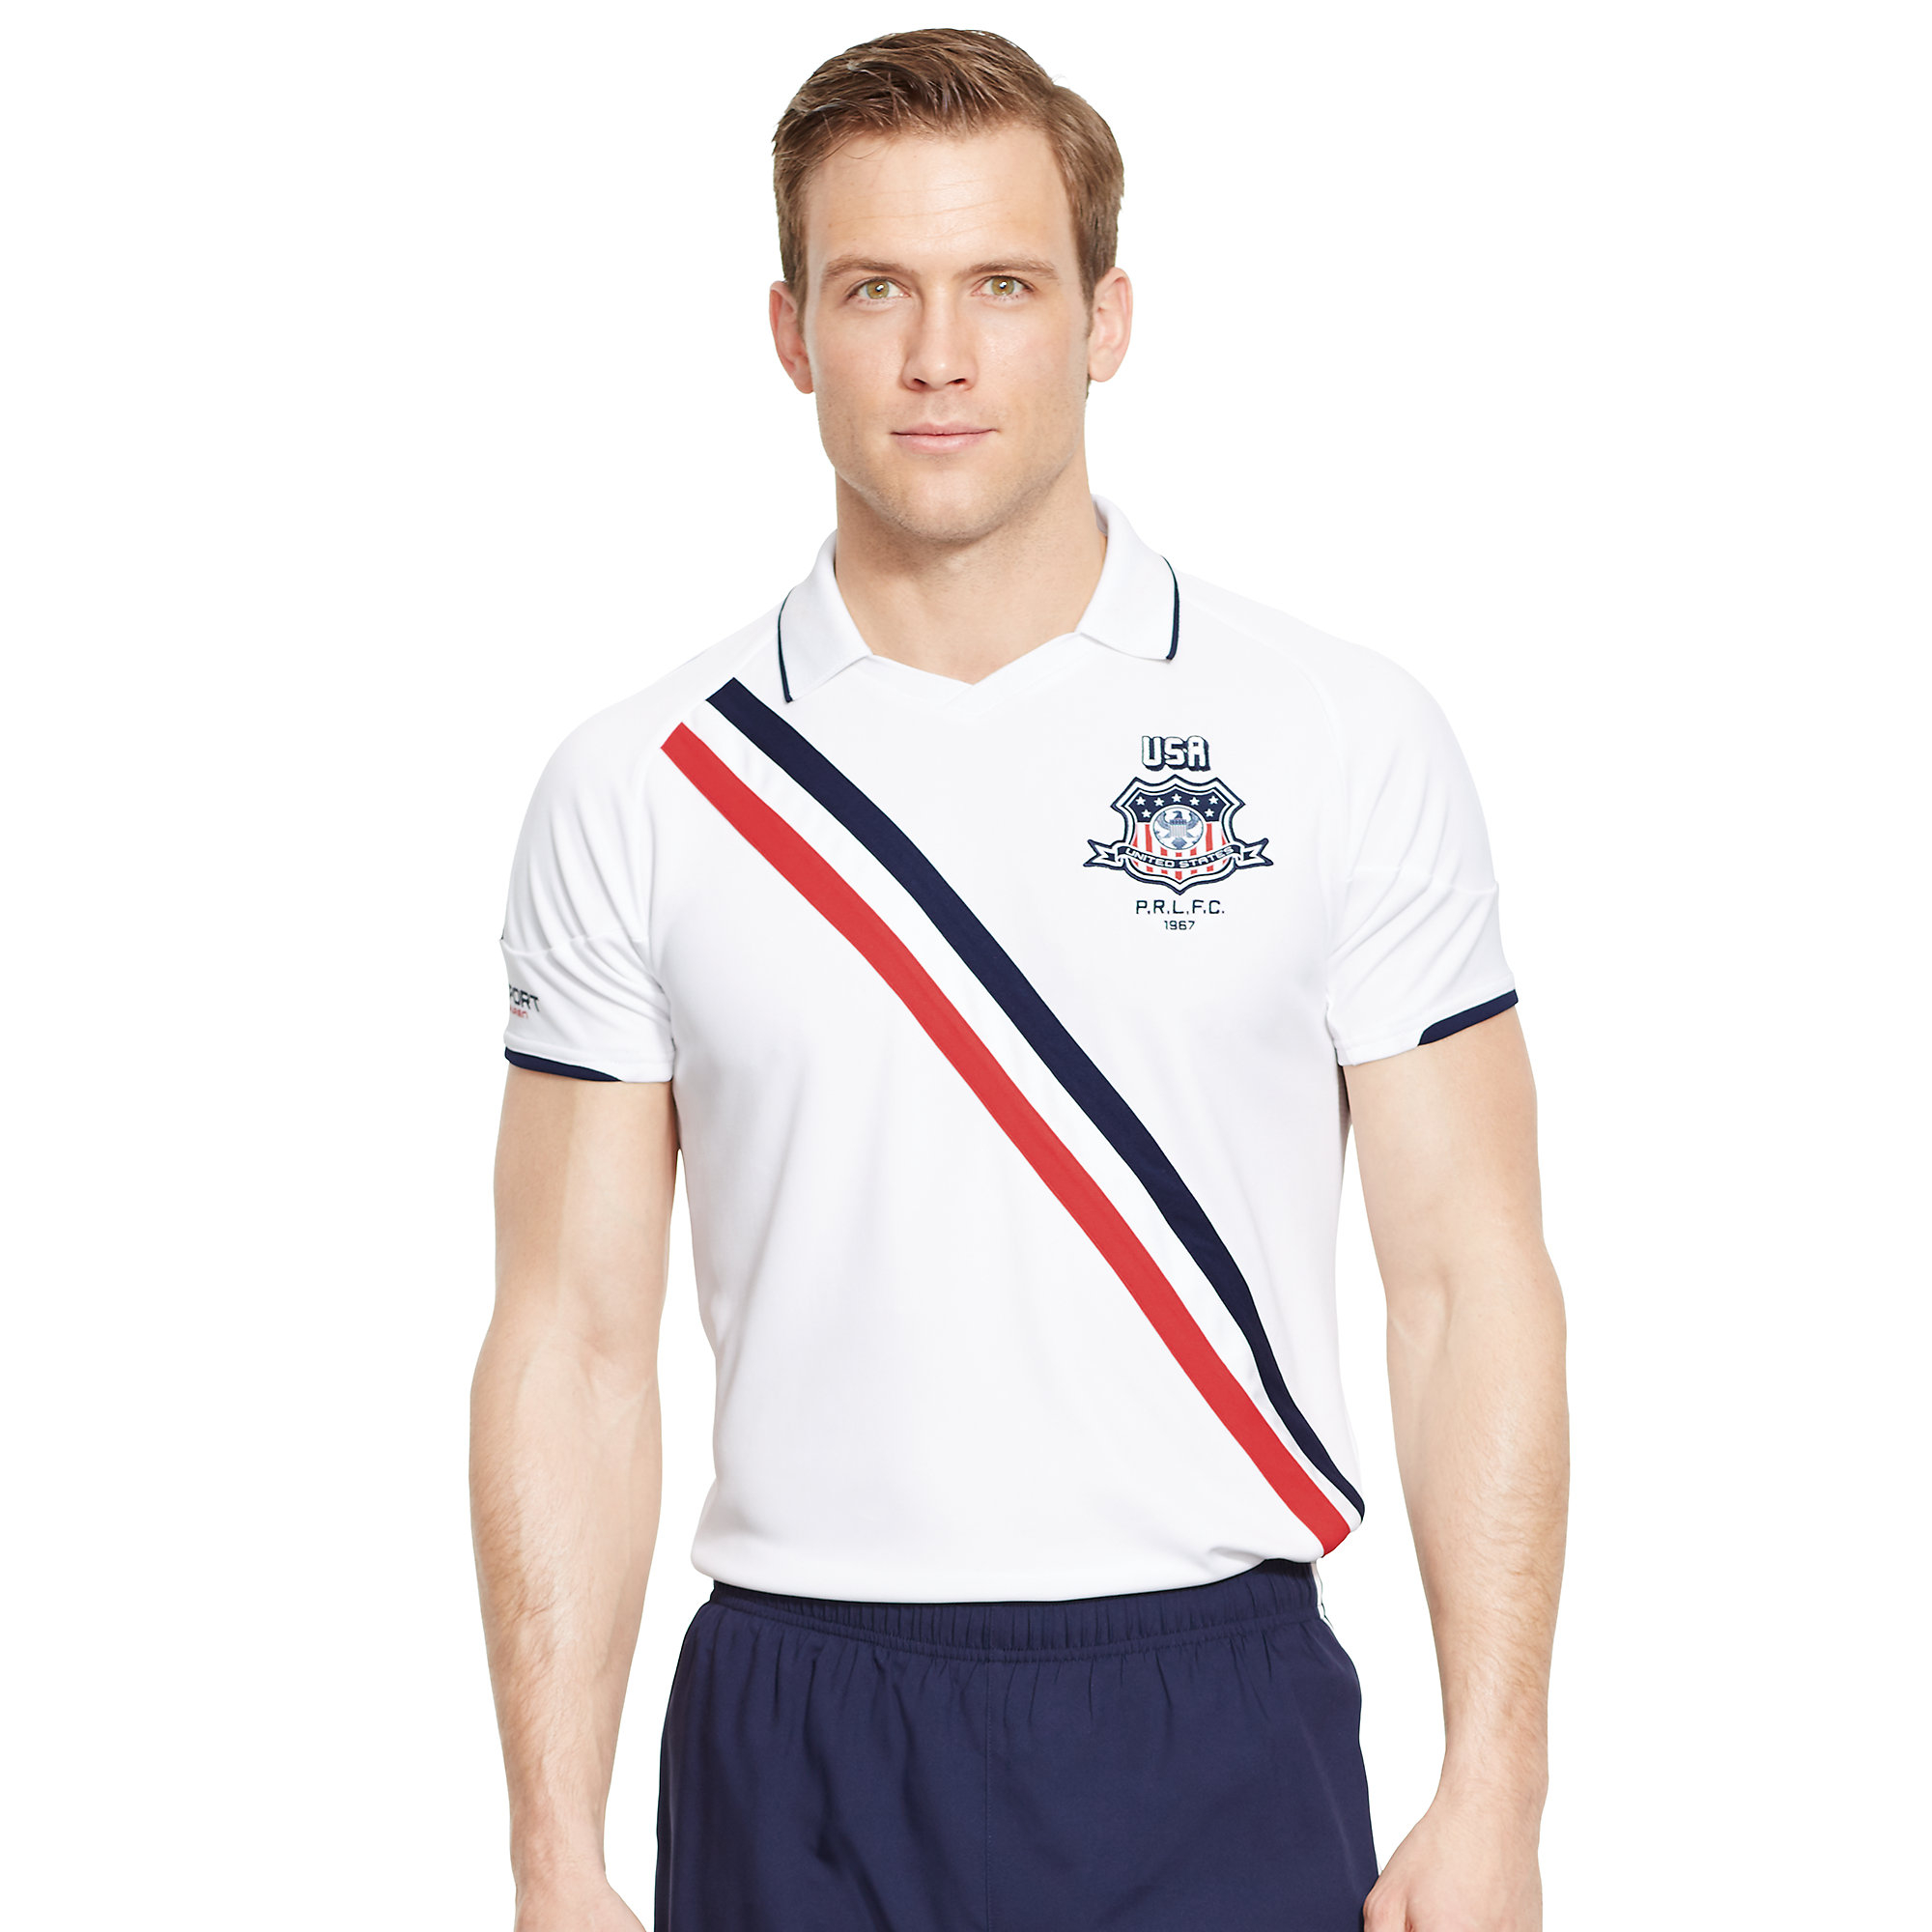 ralph lauren usa jersey polo shirt in white for men lyst. Black Bedroom Furniture Sets. Home Design Ideas